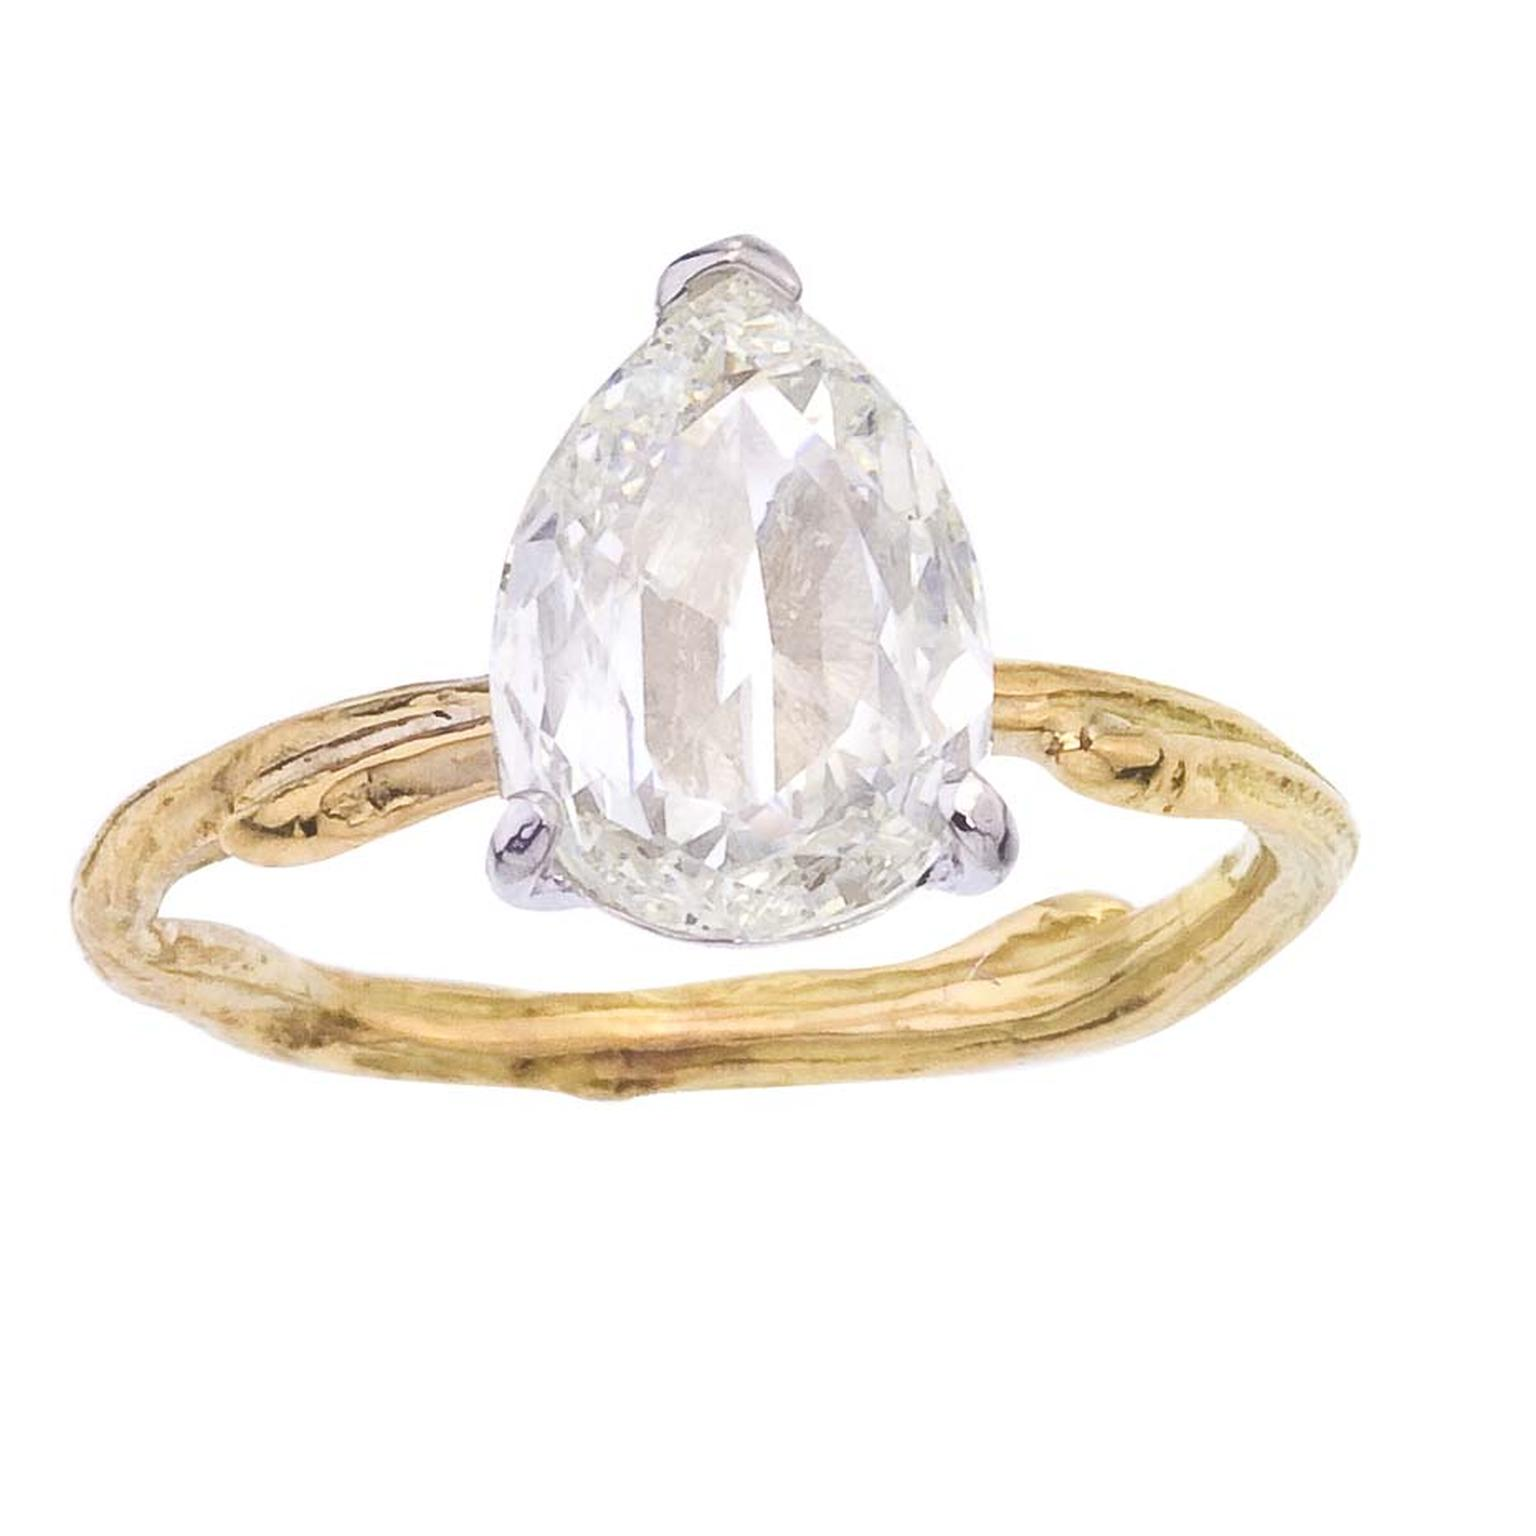 vintage ethical matching wedding diamond sapphire engagement white with recycled gold gallery and ring diamonds rings